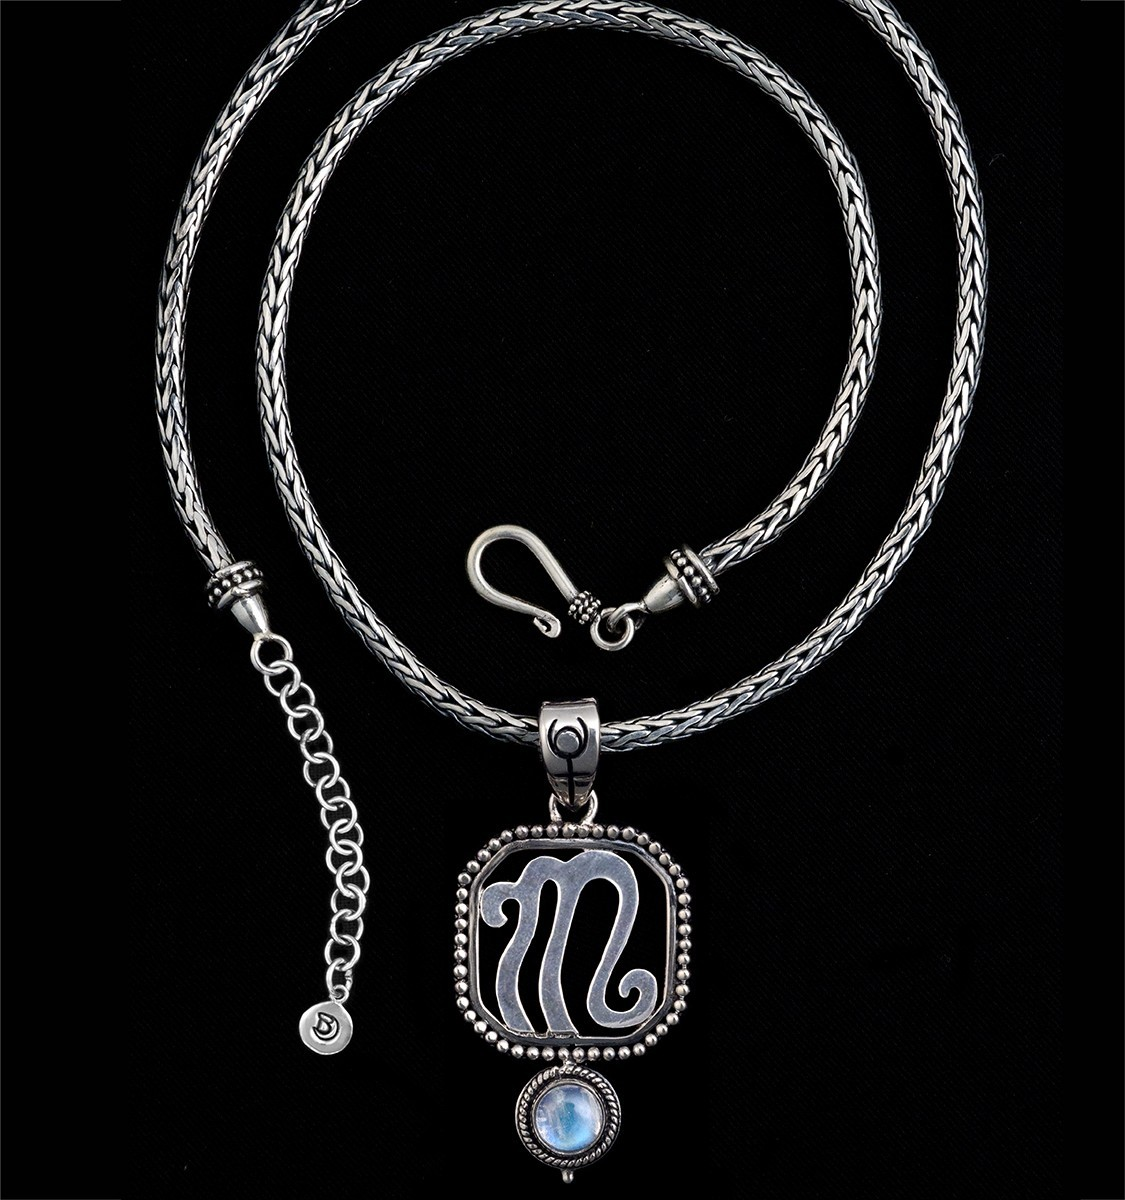 Sterling silver scorpio necklace scorpio bluemoonstone creations sterling silver scorpio necklace with rainbow moonstone mozeypictures Image collections